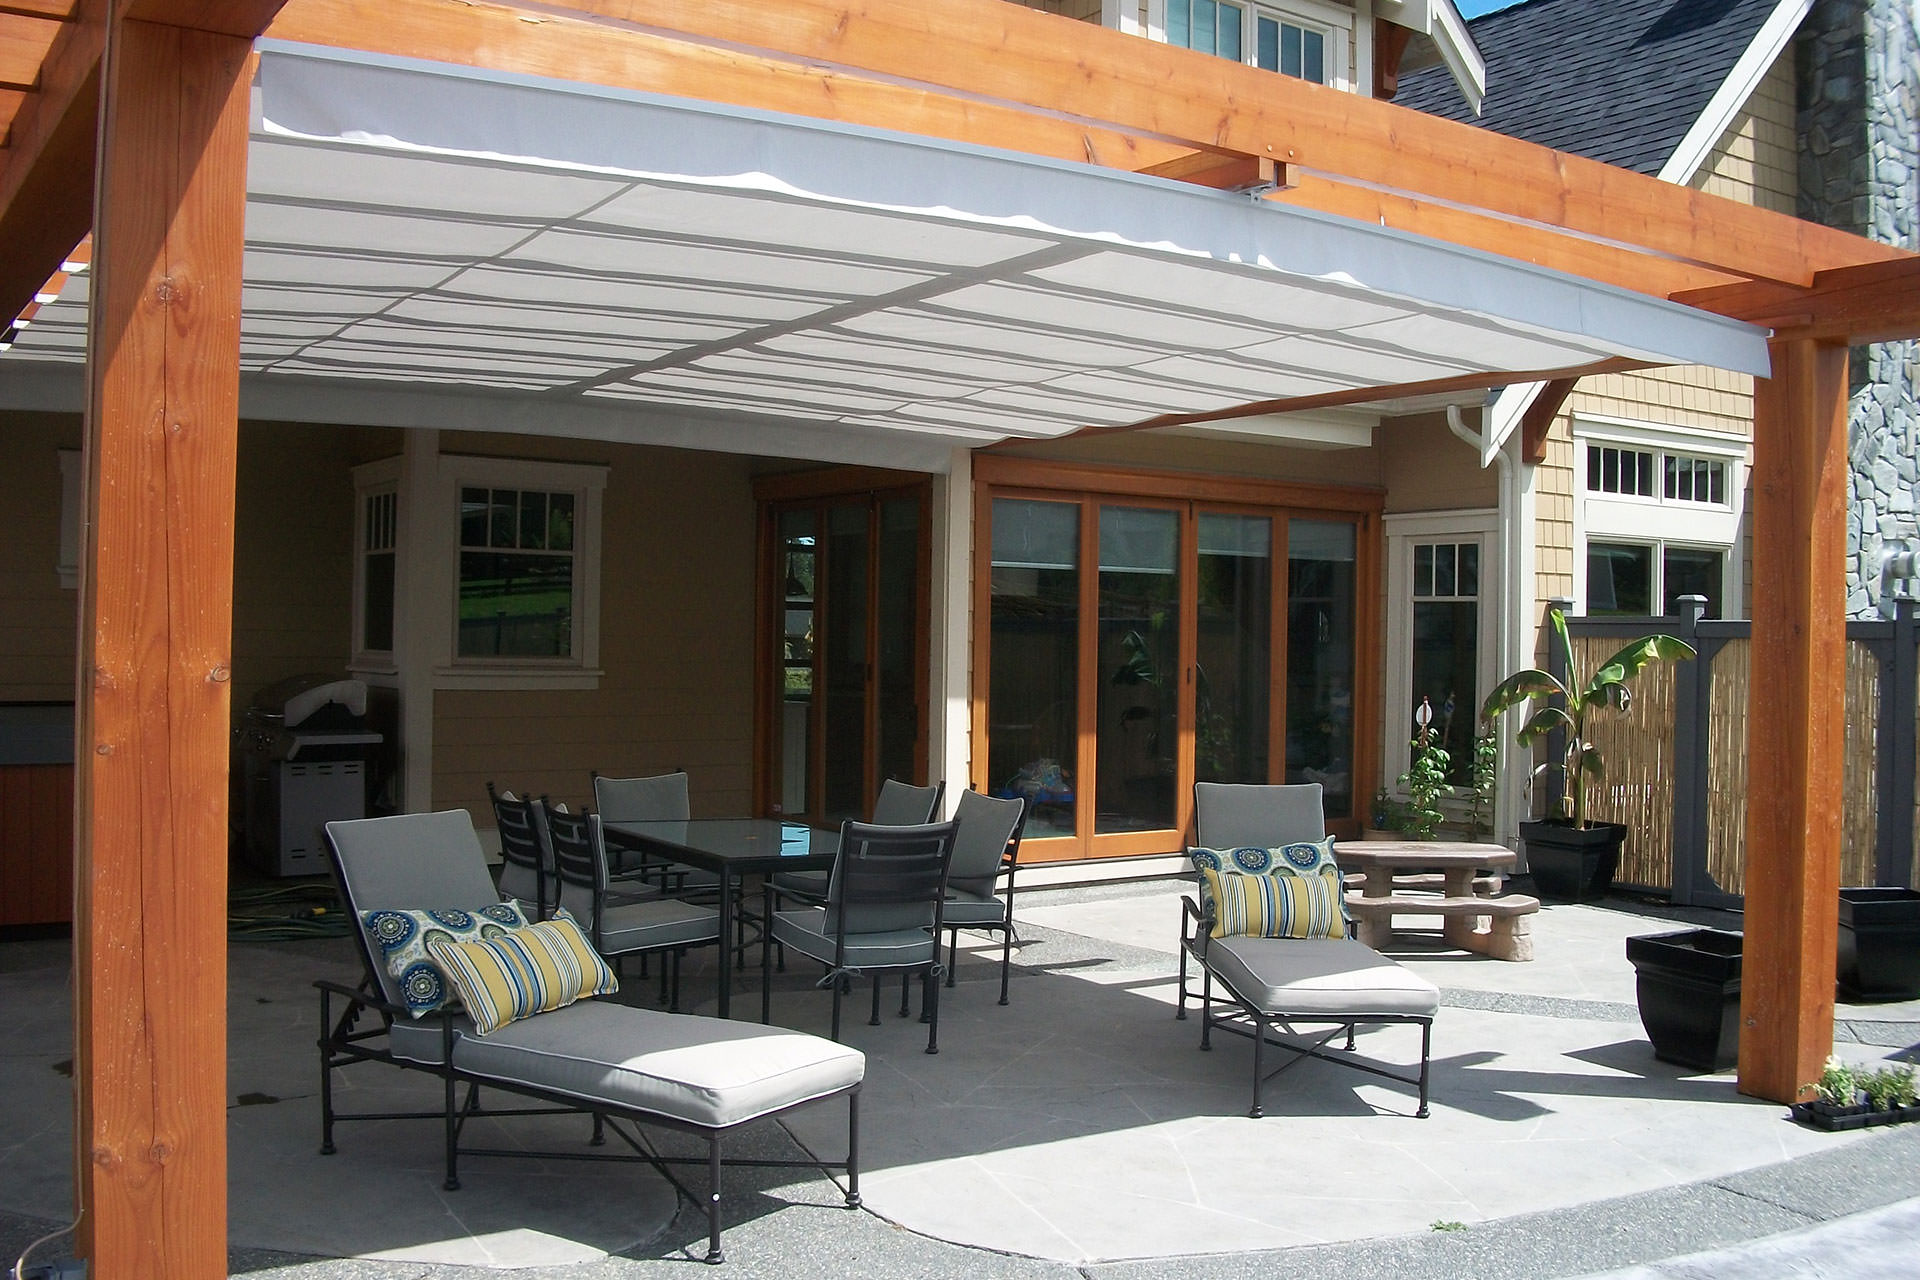 Pergola Roof - ShadeFX Retractable Canopy